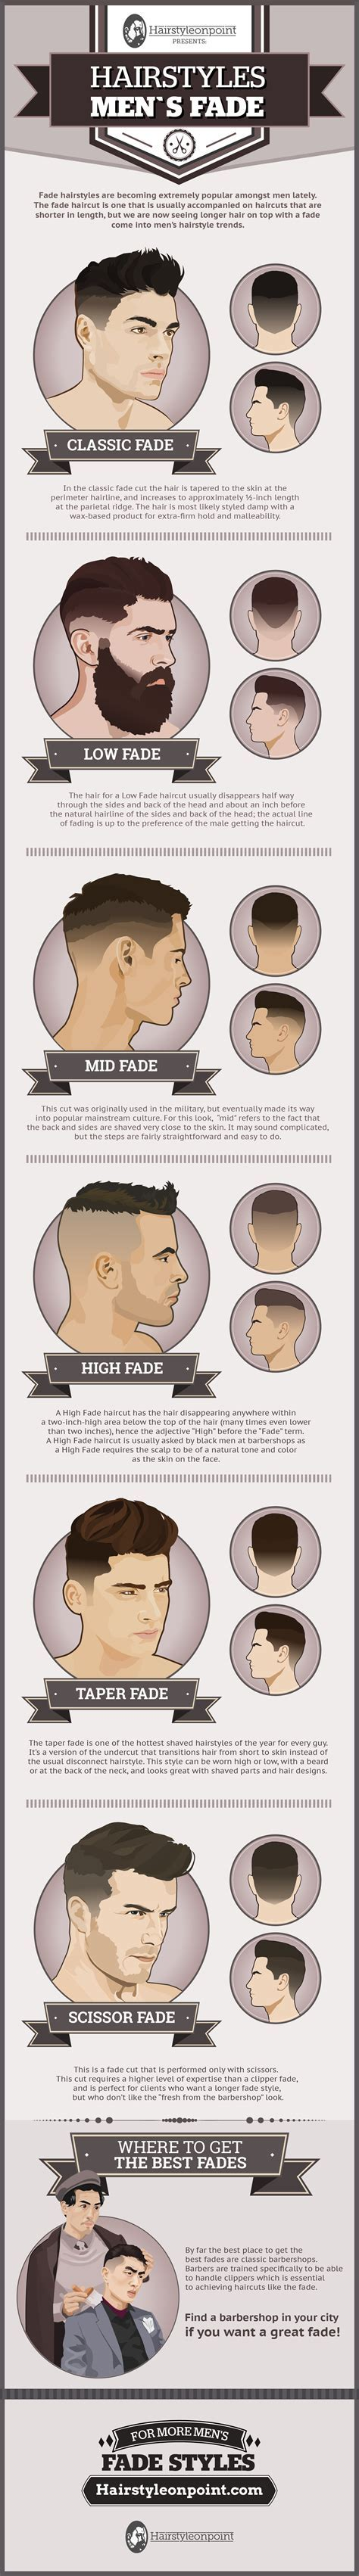 6 ways to rock a fade haircut   Business Insider